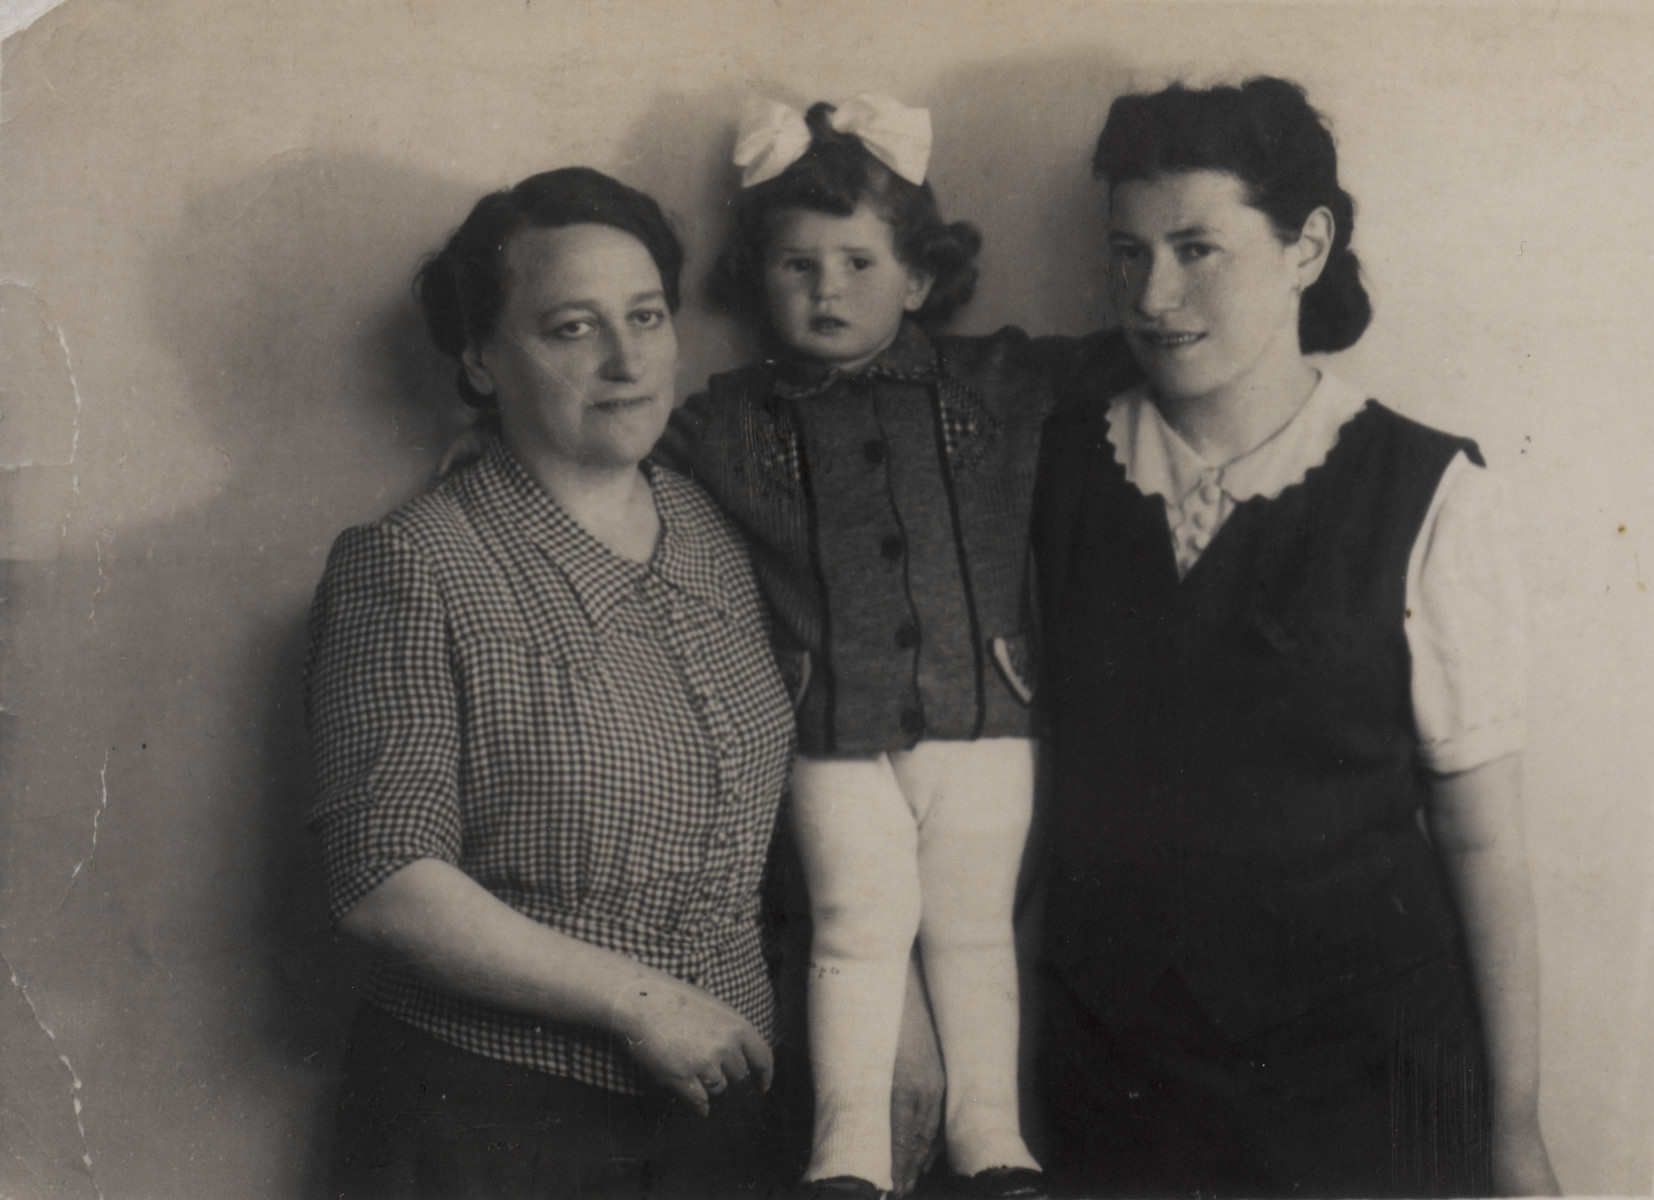 Portrait of two women and a young child in the Tarnow ghetto.  Among those pictured (center) is Elizabeth Lusthaus.  Her great aunt is pictured on the left and her mother Helena Lusthaus is on the right.  The aunt perished in the Holocaust.